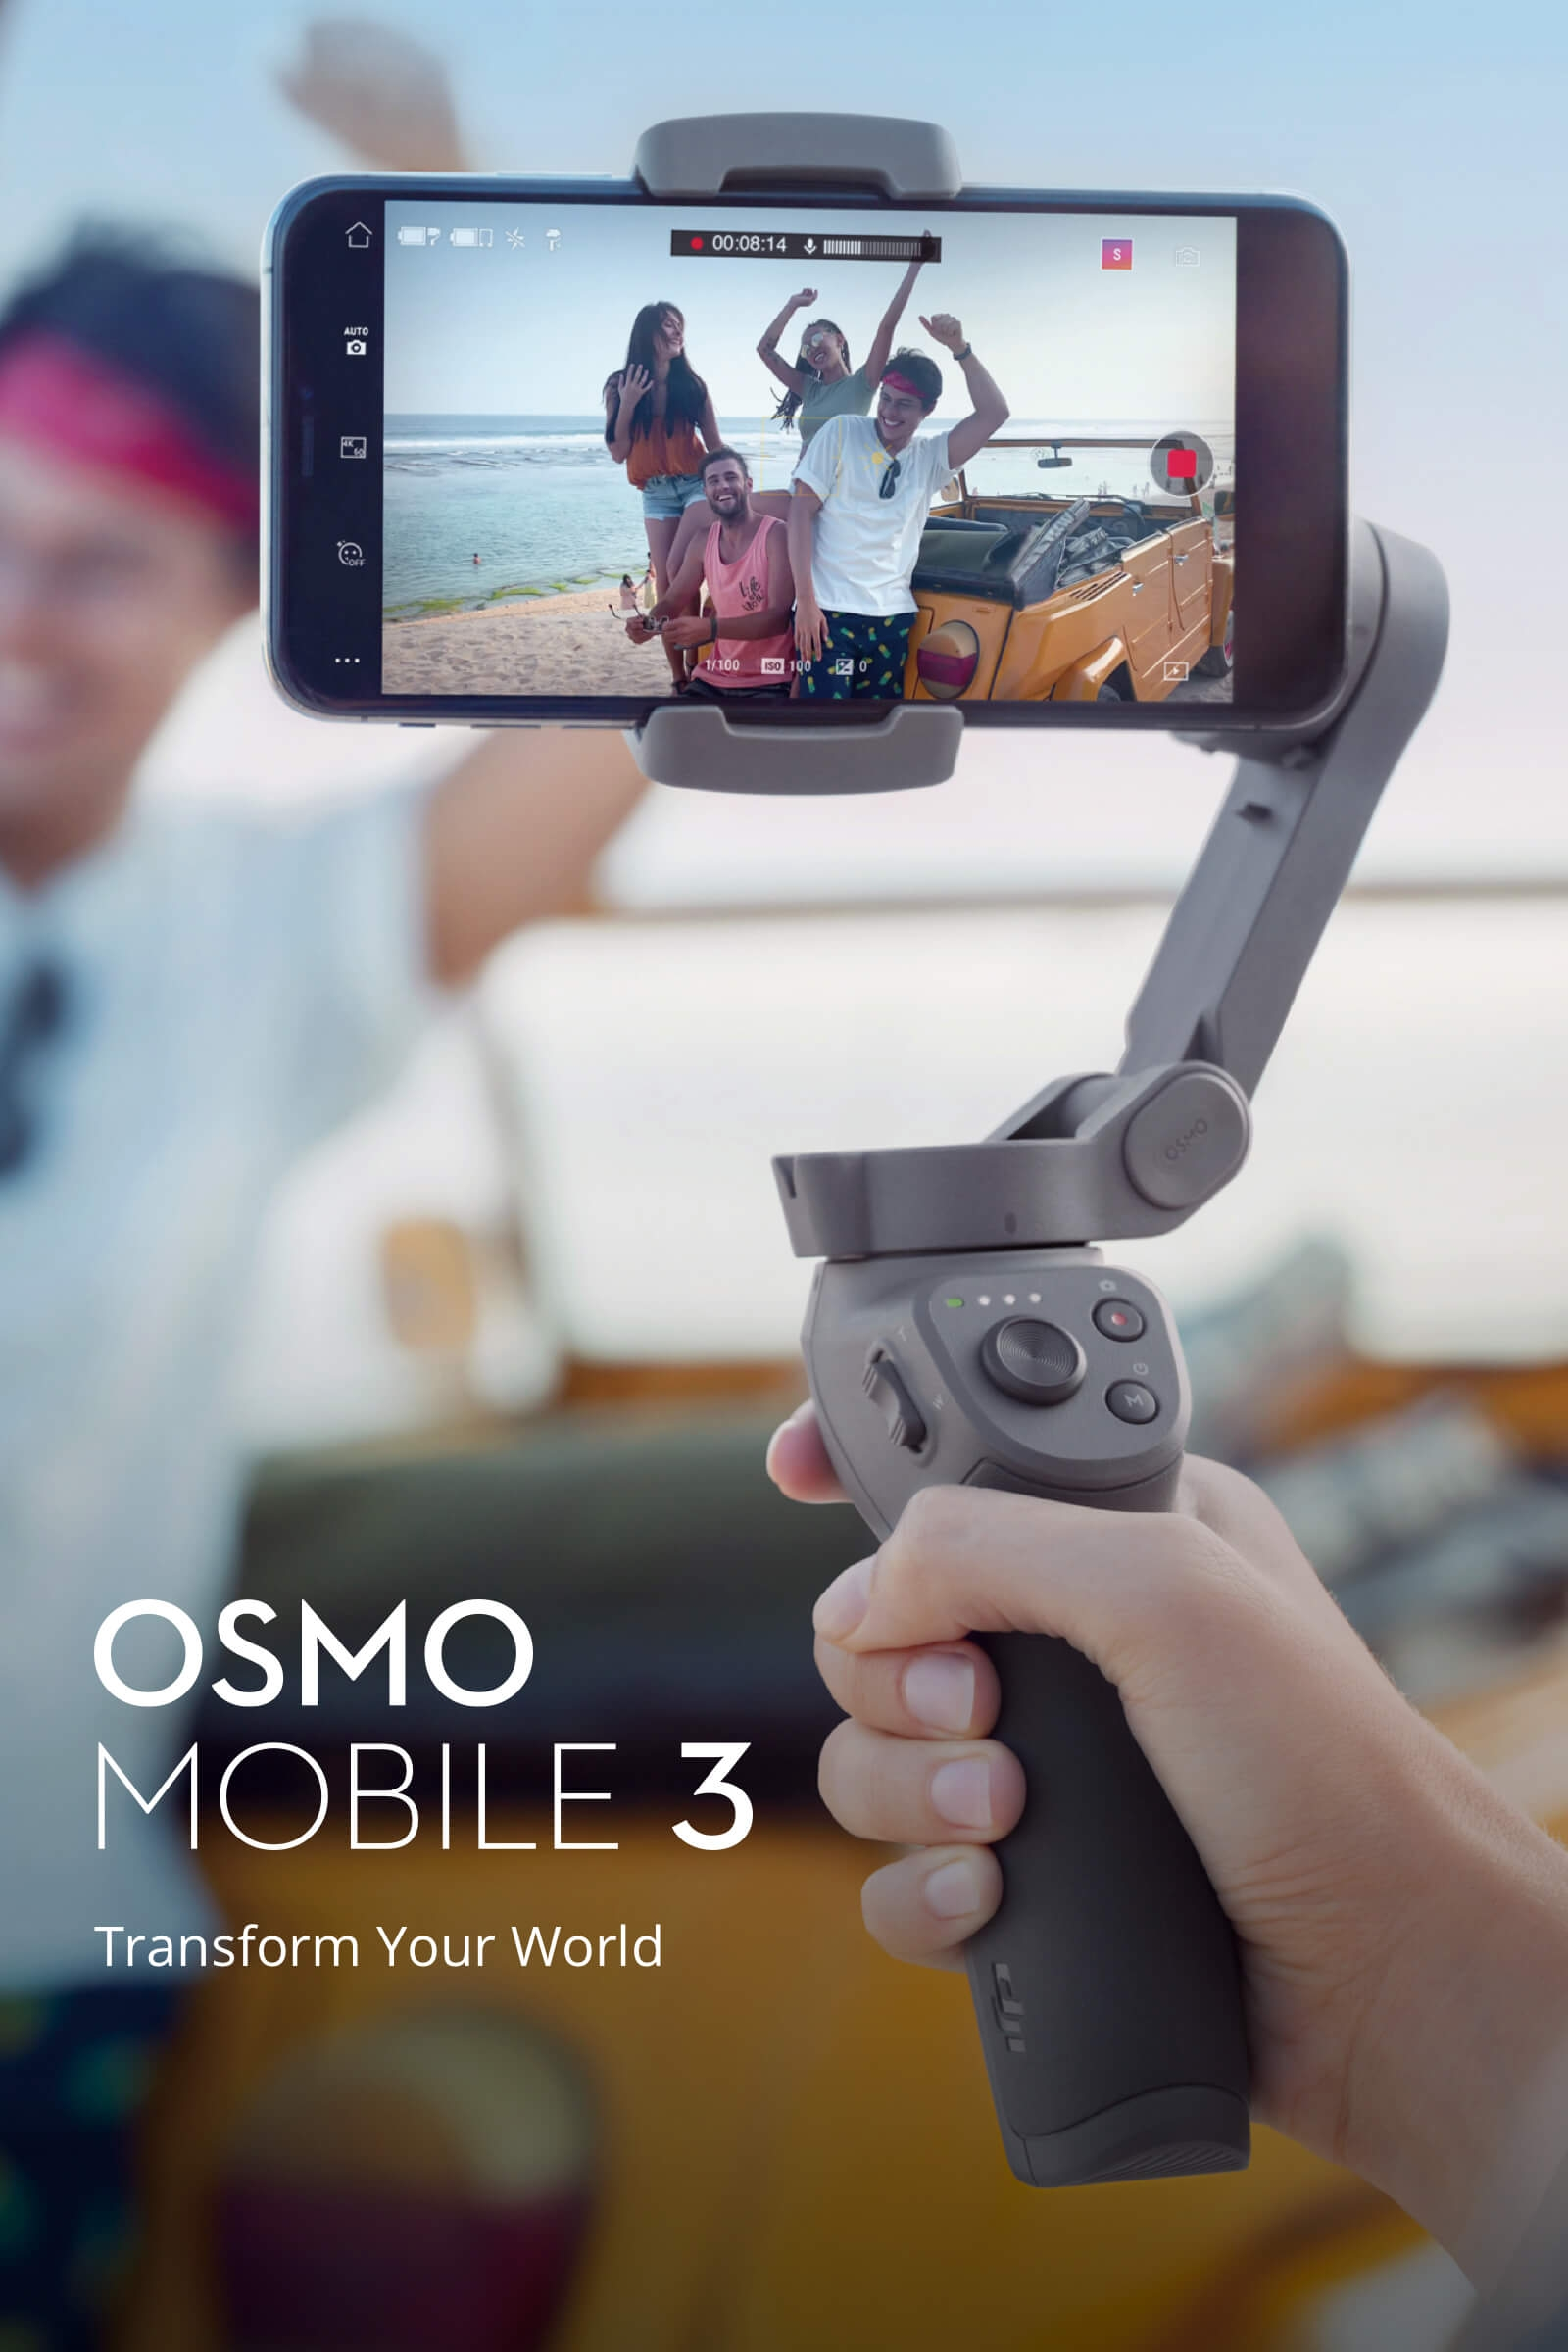 DJI Osmo Mobile 3 Foldable Active Track 3.0 Handheld Gimbal Portable Stabilizer Gesture Control Vlog Story Mode for Smartphones